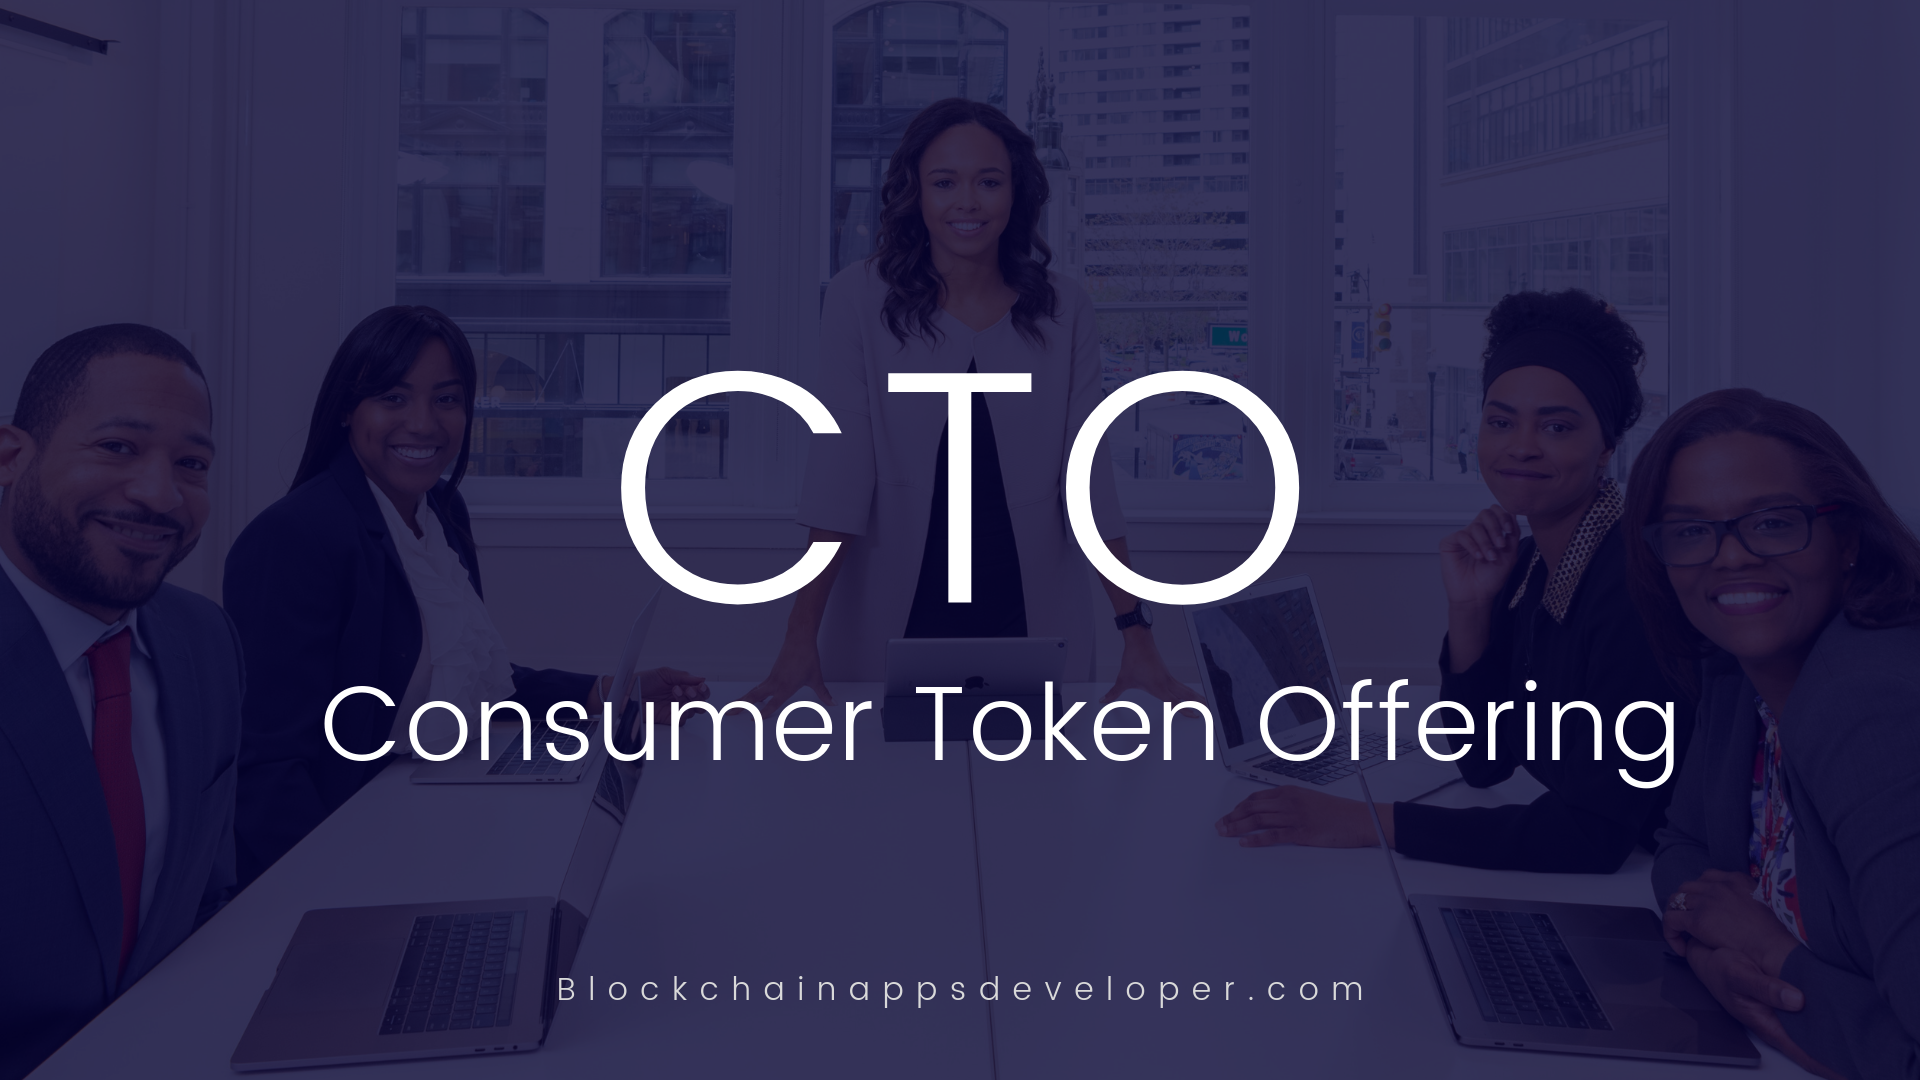 https://res.cloudinary.com/dq68pjcwe/image/upload/v1559115765/ico/tuf6hfausxkw8rfmwteh.png